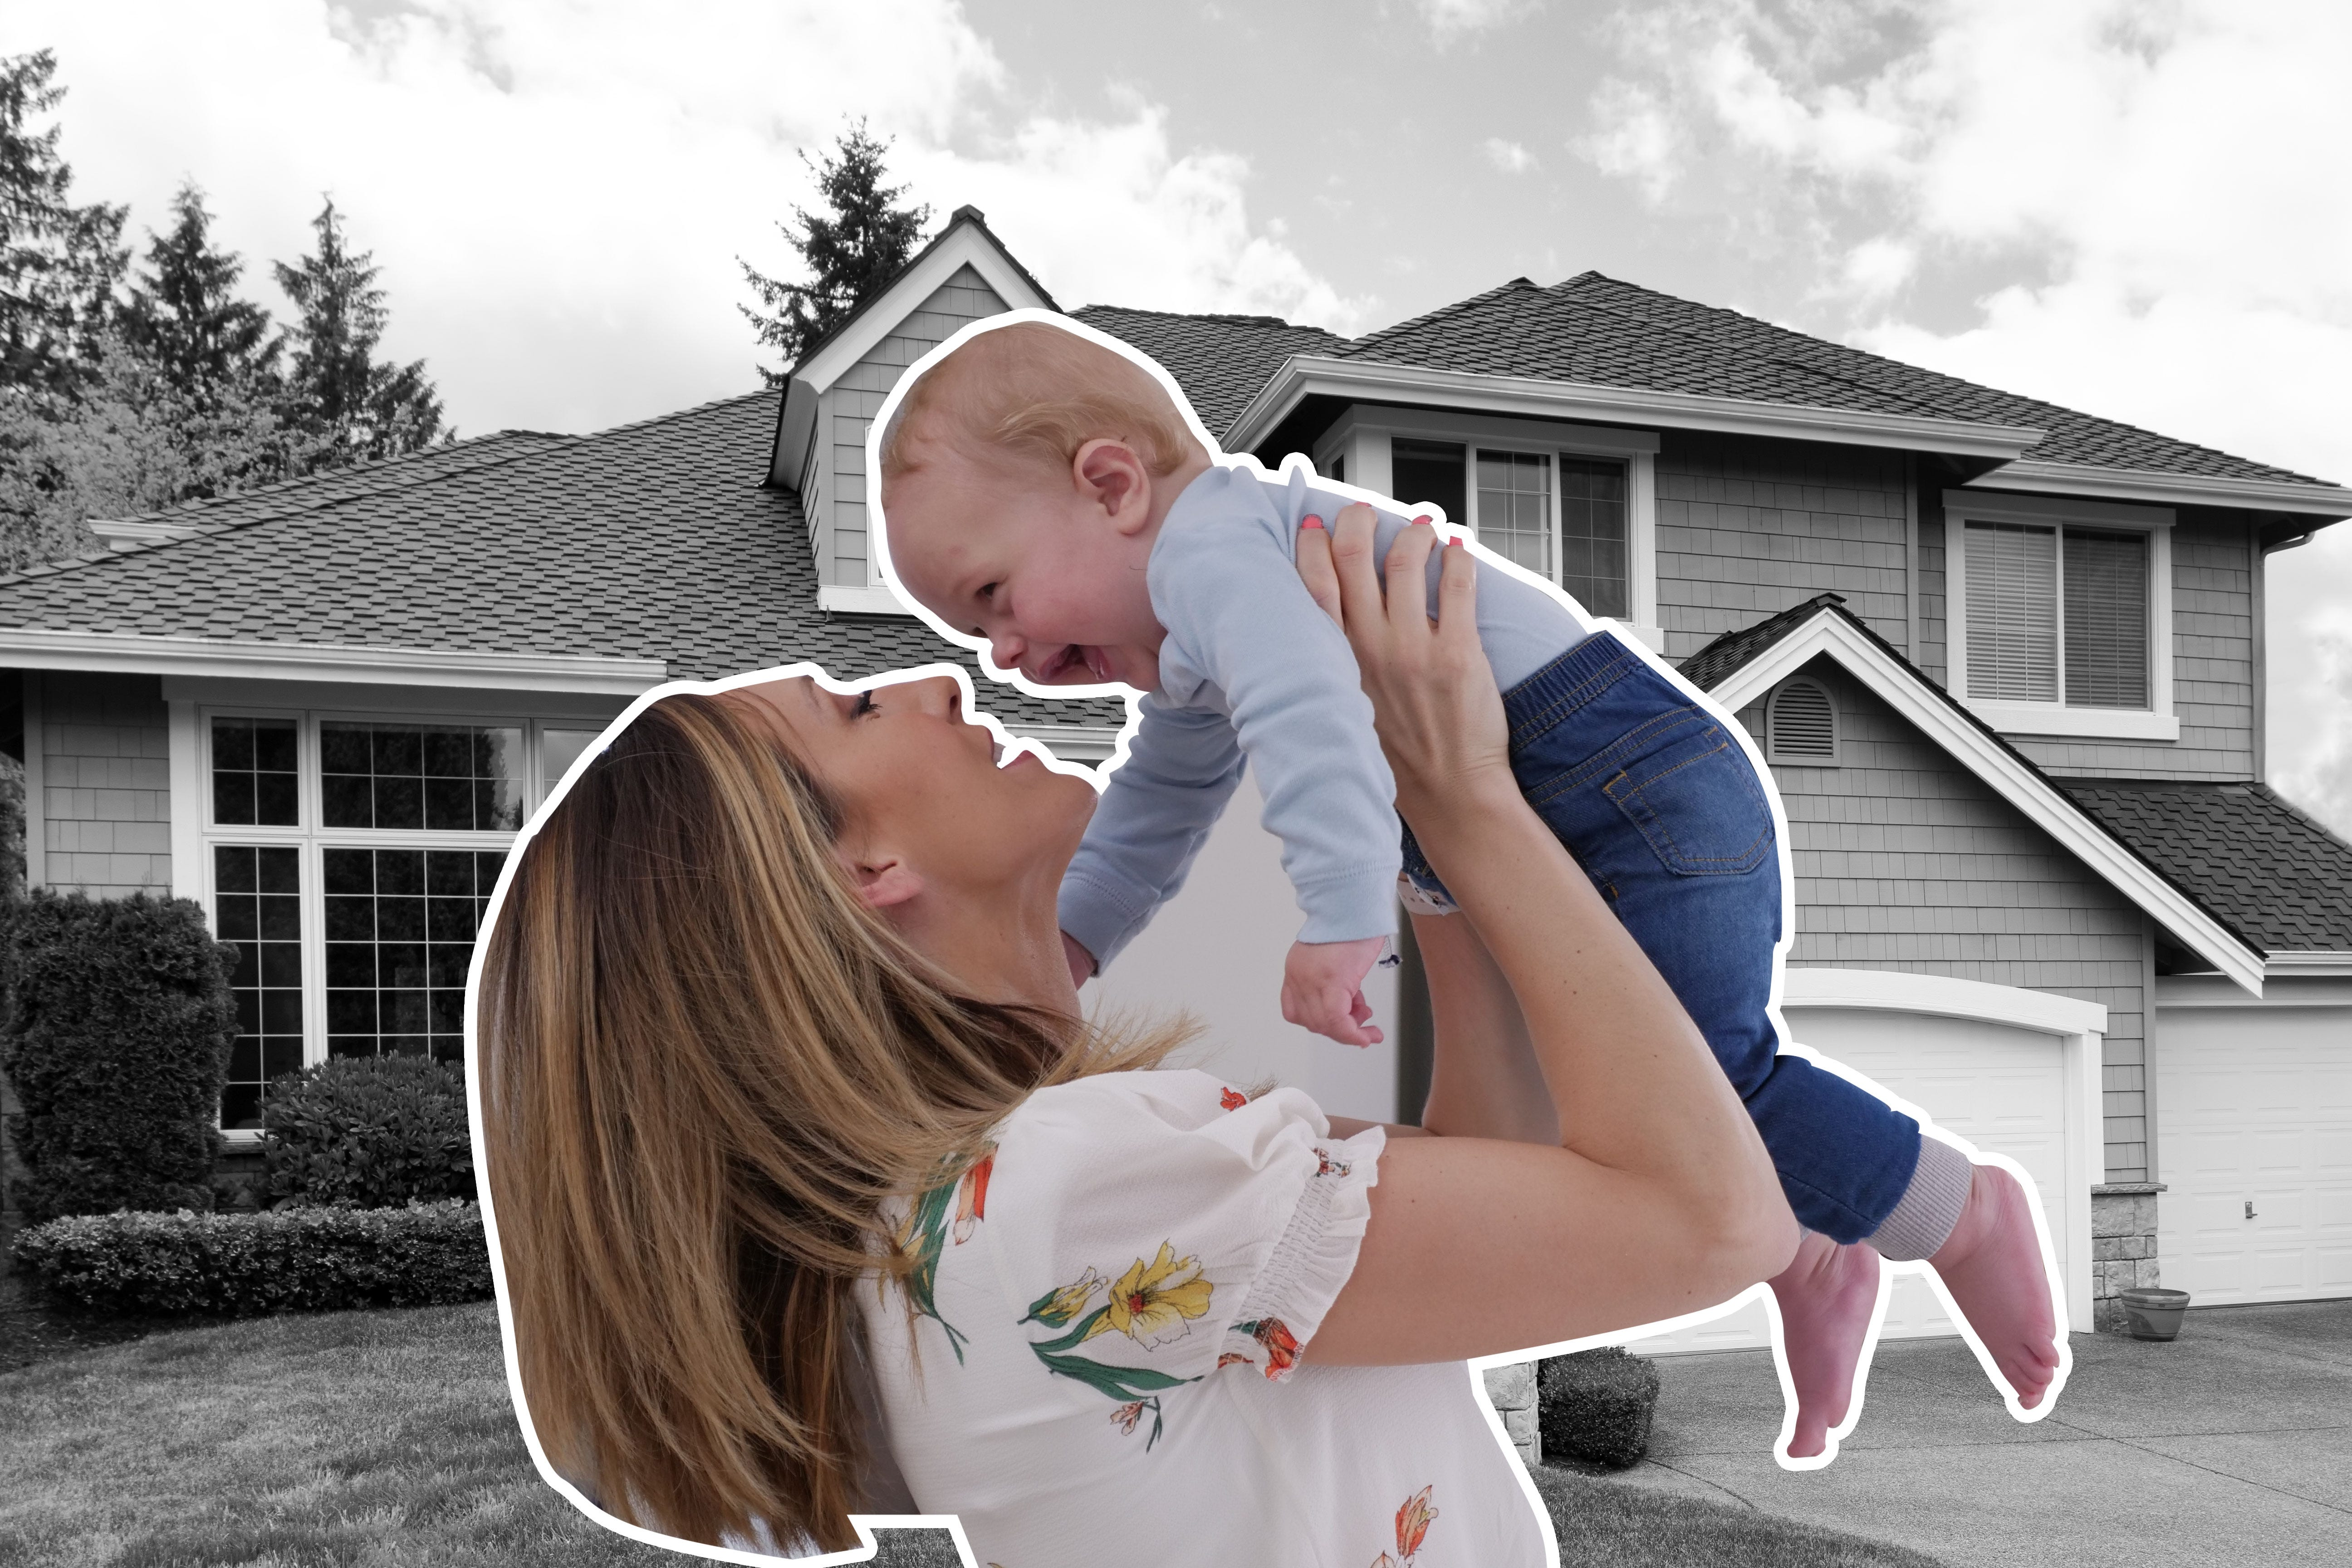 Top safety tips to prepare your home for a baby